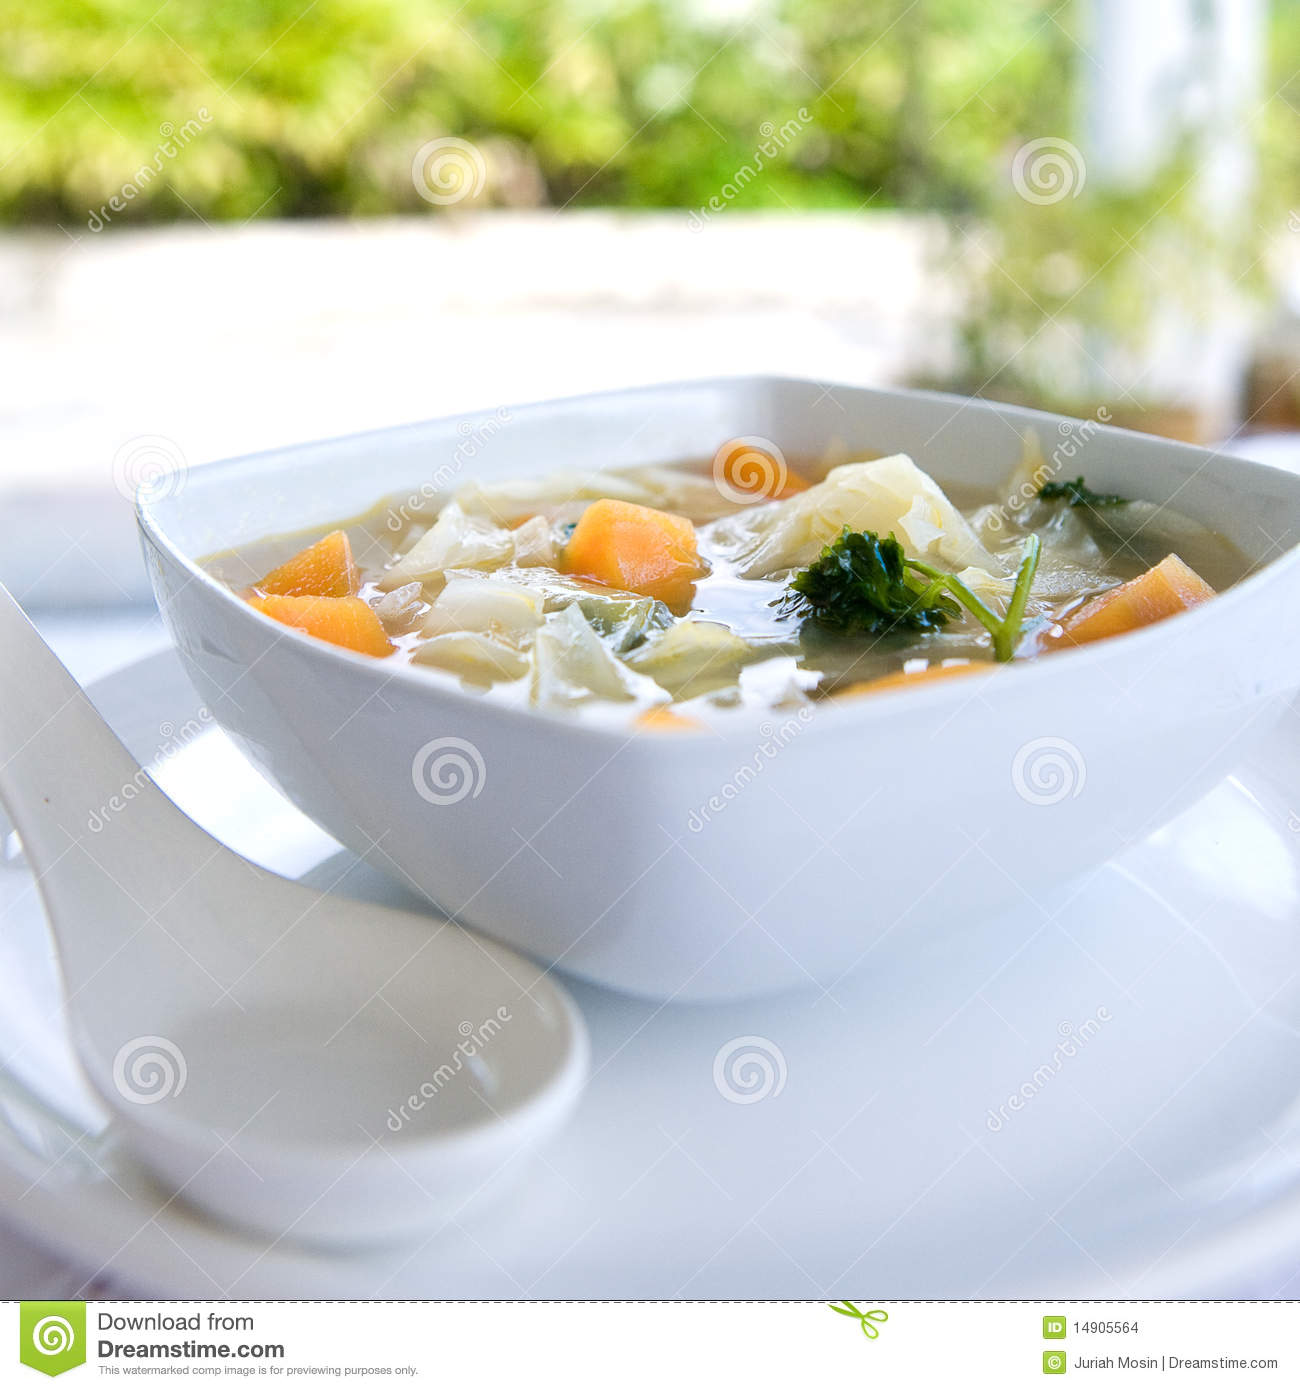 how to make cabbage soup for crash diet